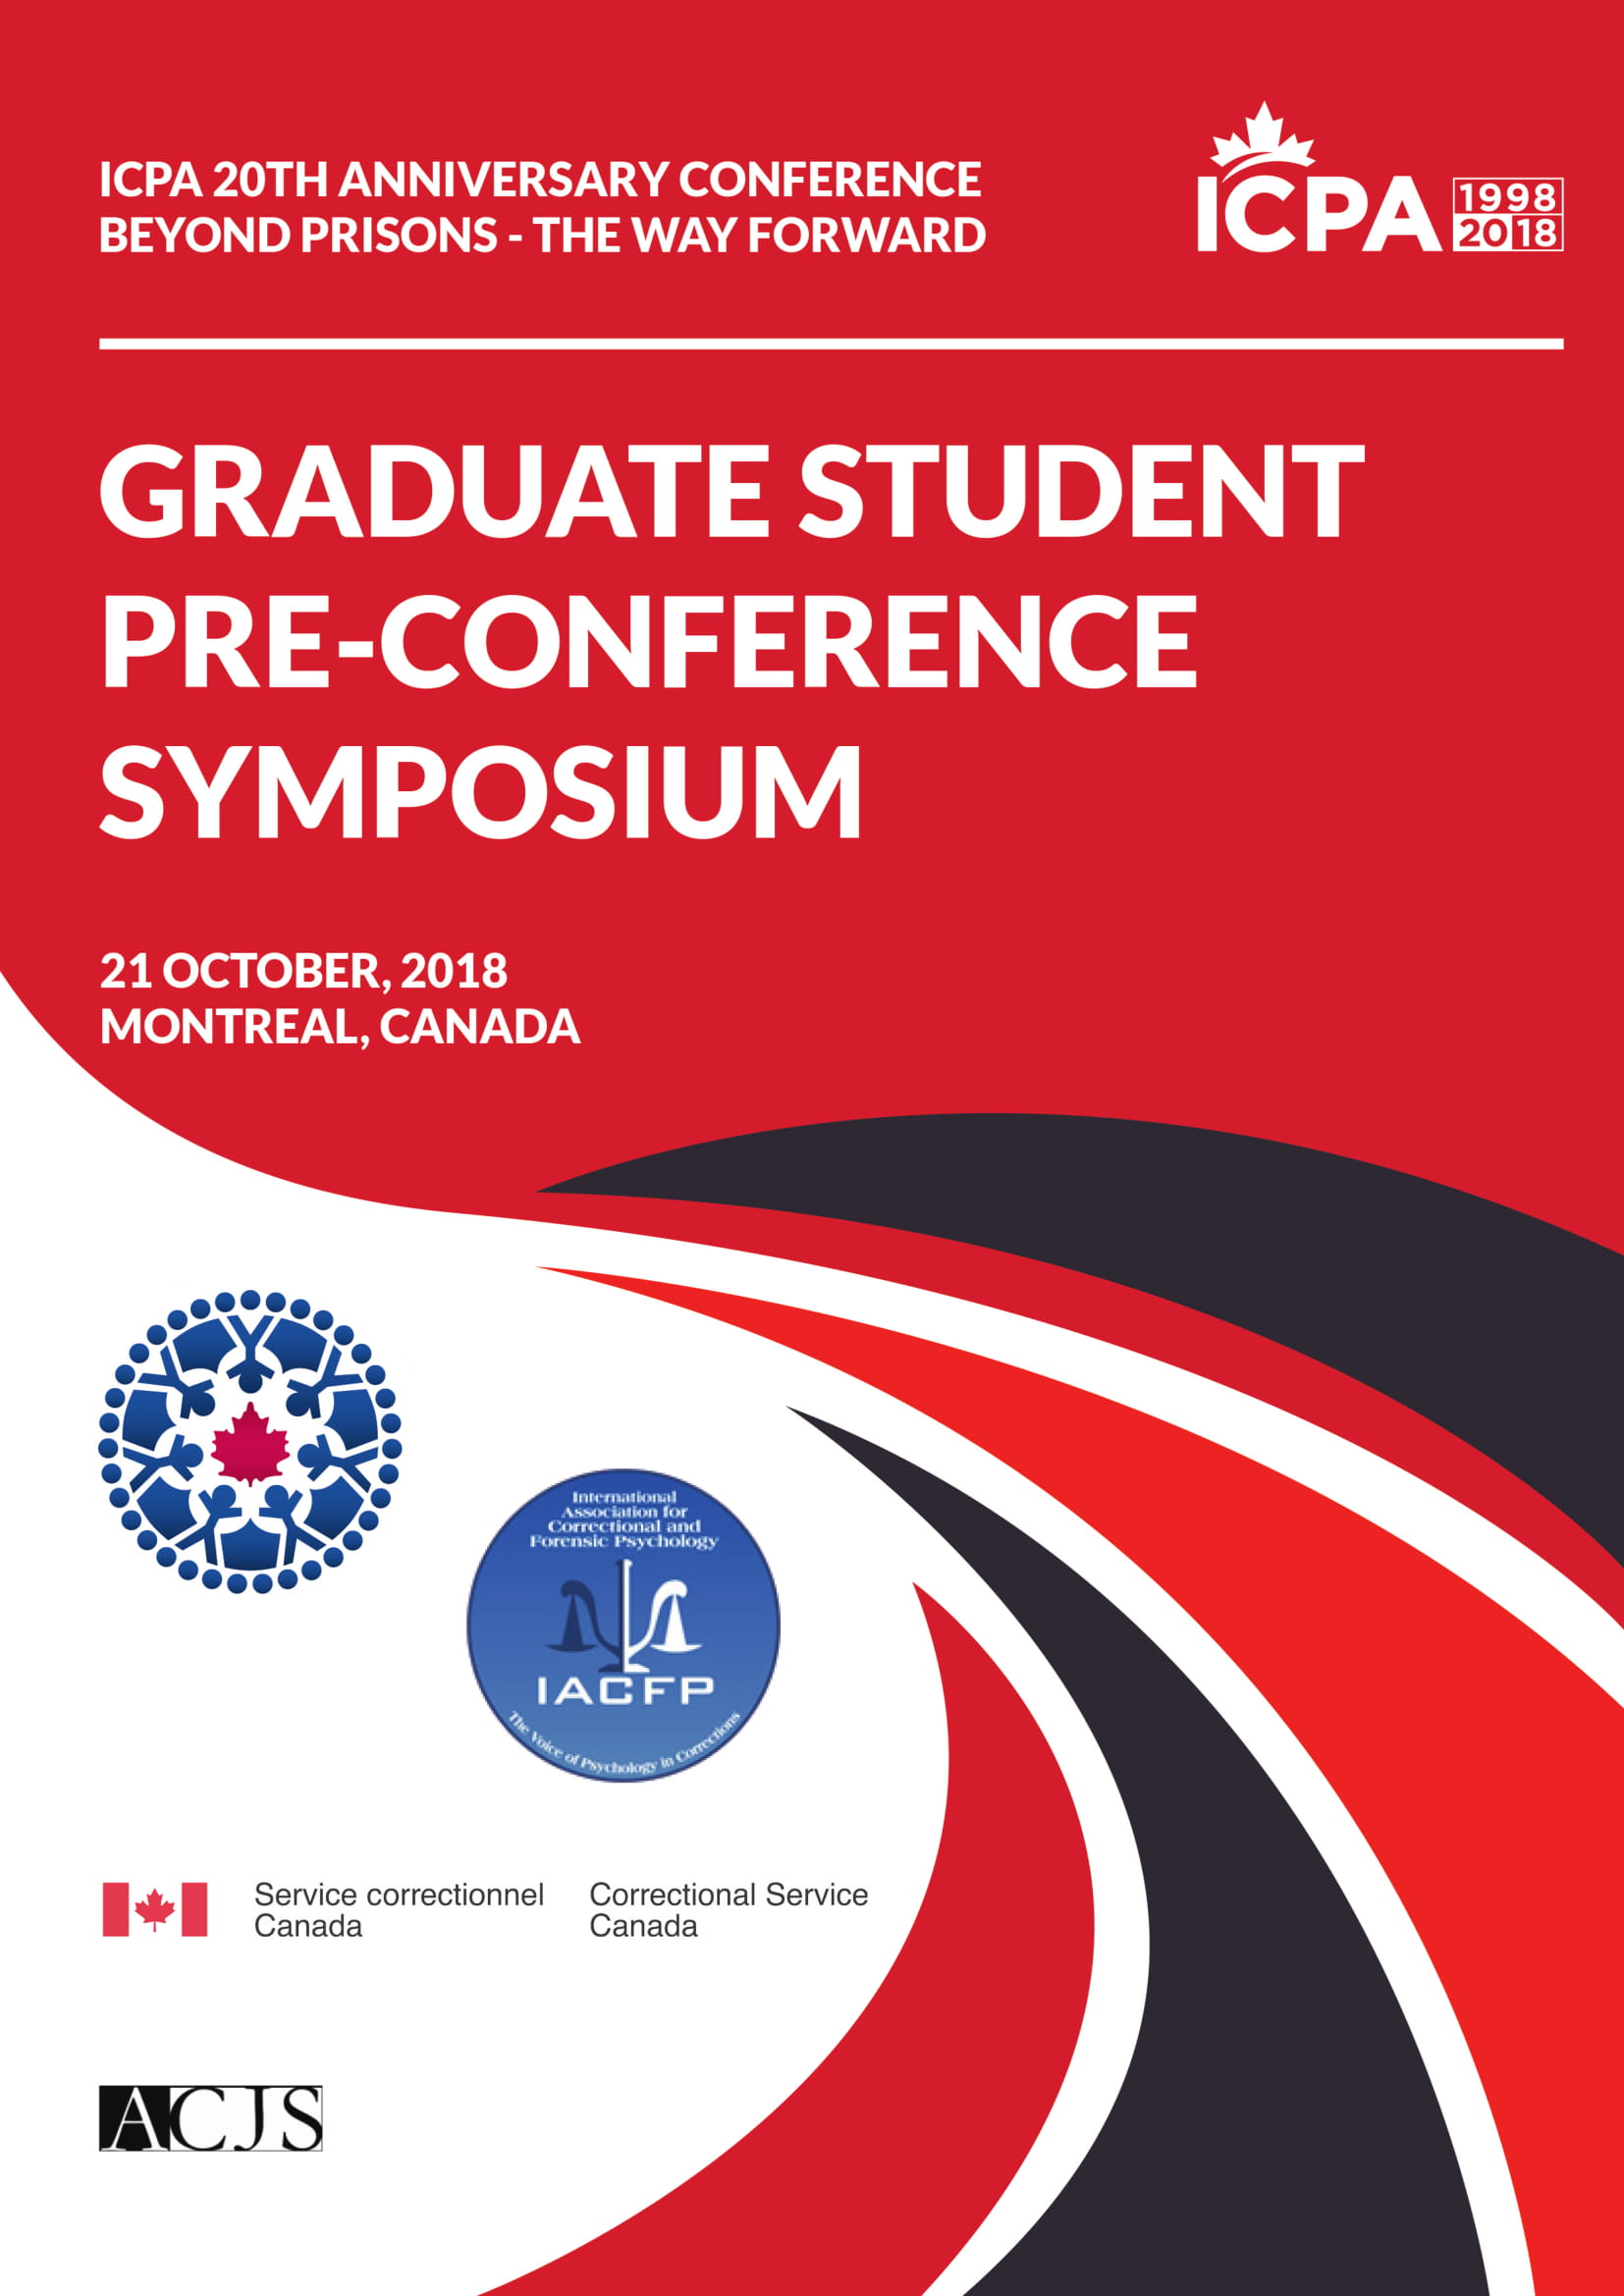 Call for Papers: ICPA Graduate Student Pre-Conference Symposium